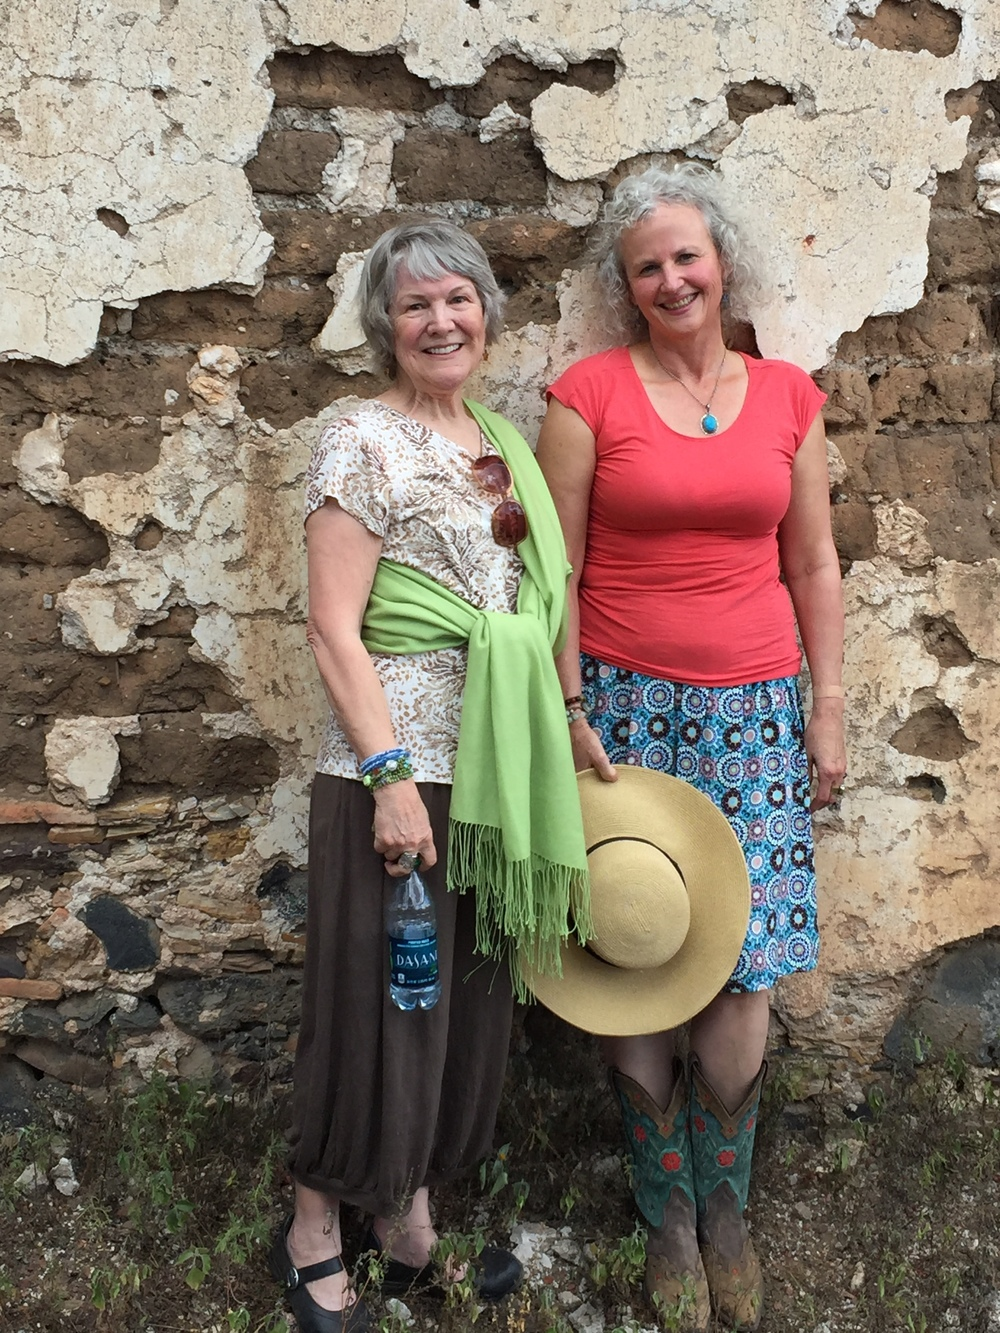 Judy Wise and Katie Kendrick in San Miguel de Allende, Mexico